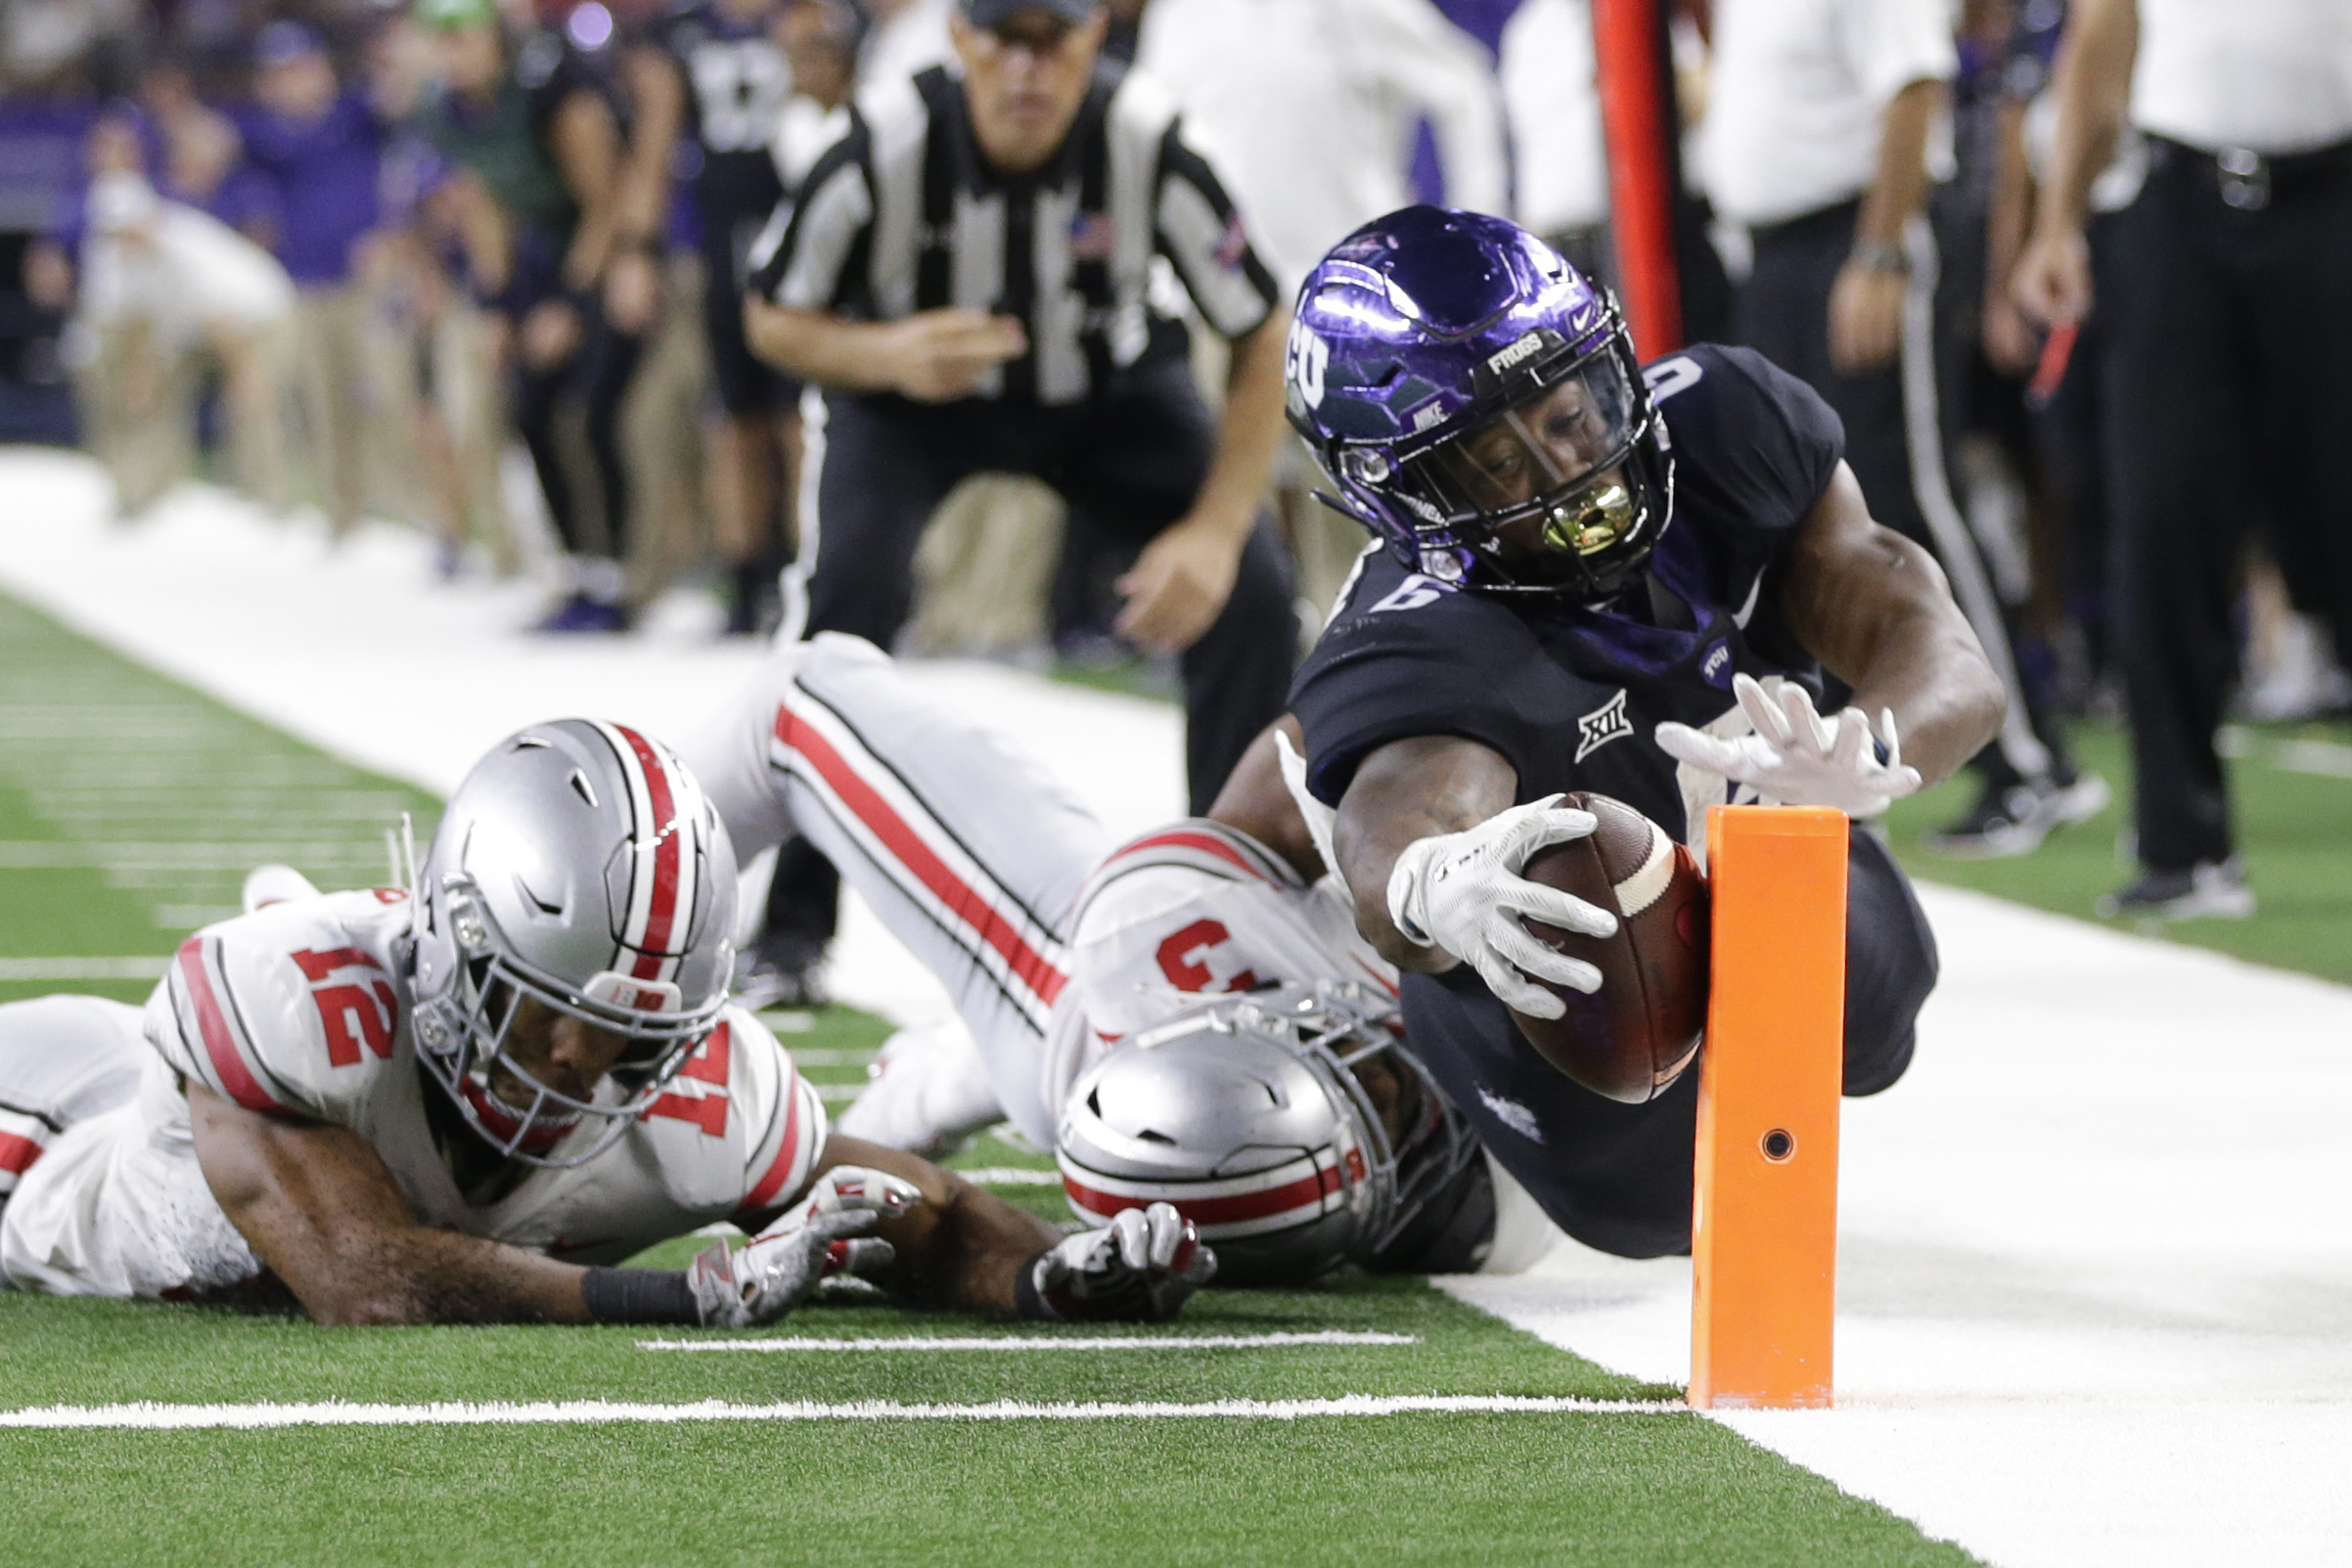 Sep 15, 2018; Arlington, TX, USA; TCU Horned Frogs running back Darius Anderson (6) scores a touchdown against Ohio State Buckeyes cornerback Damon Arnette Jr. (3) in the third quarter at AT&T Stadium. Mandatory Credit: Tim Heitman-USA TODAY Sports